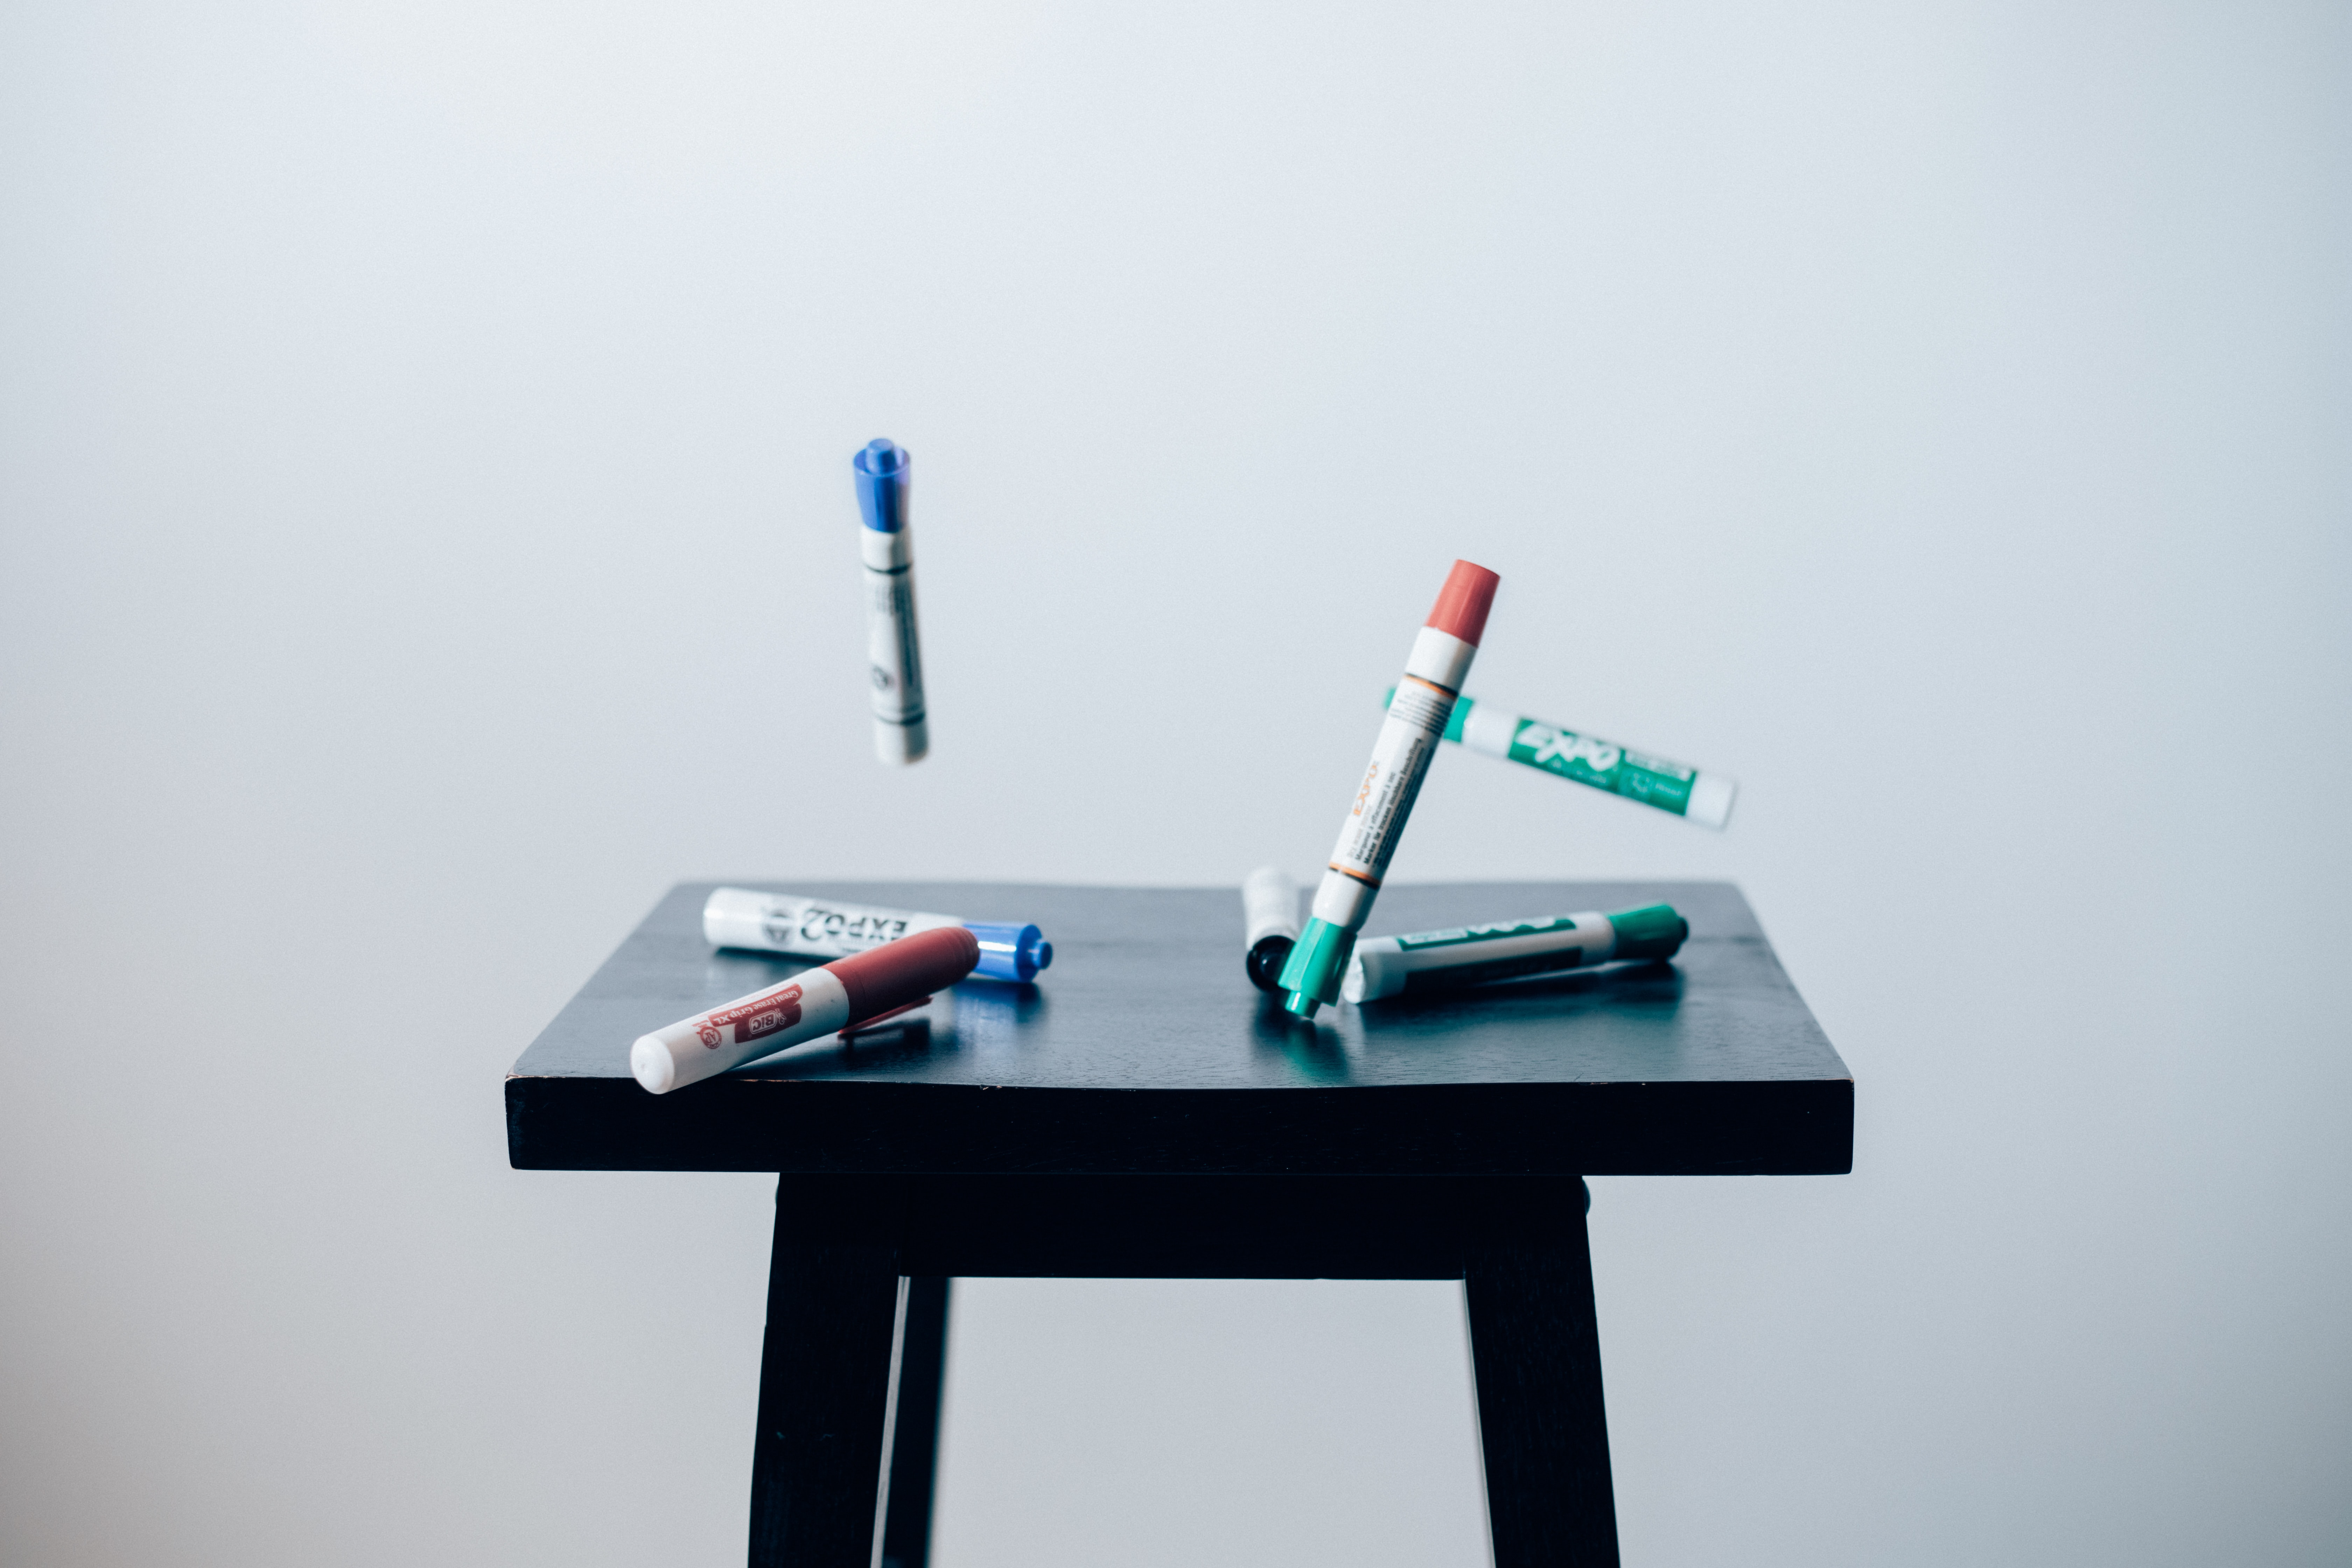 Marker pens are being dropped on a black stool.